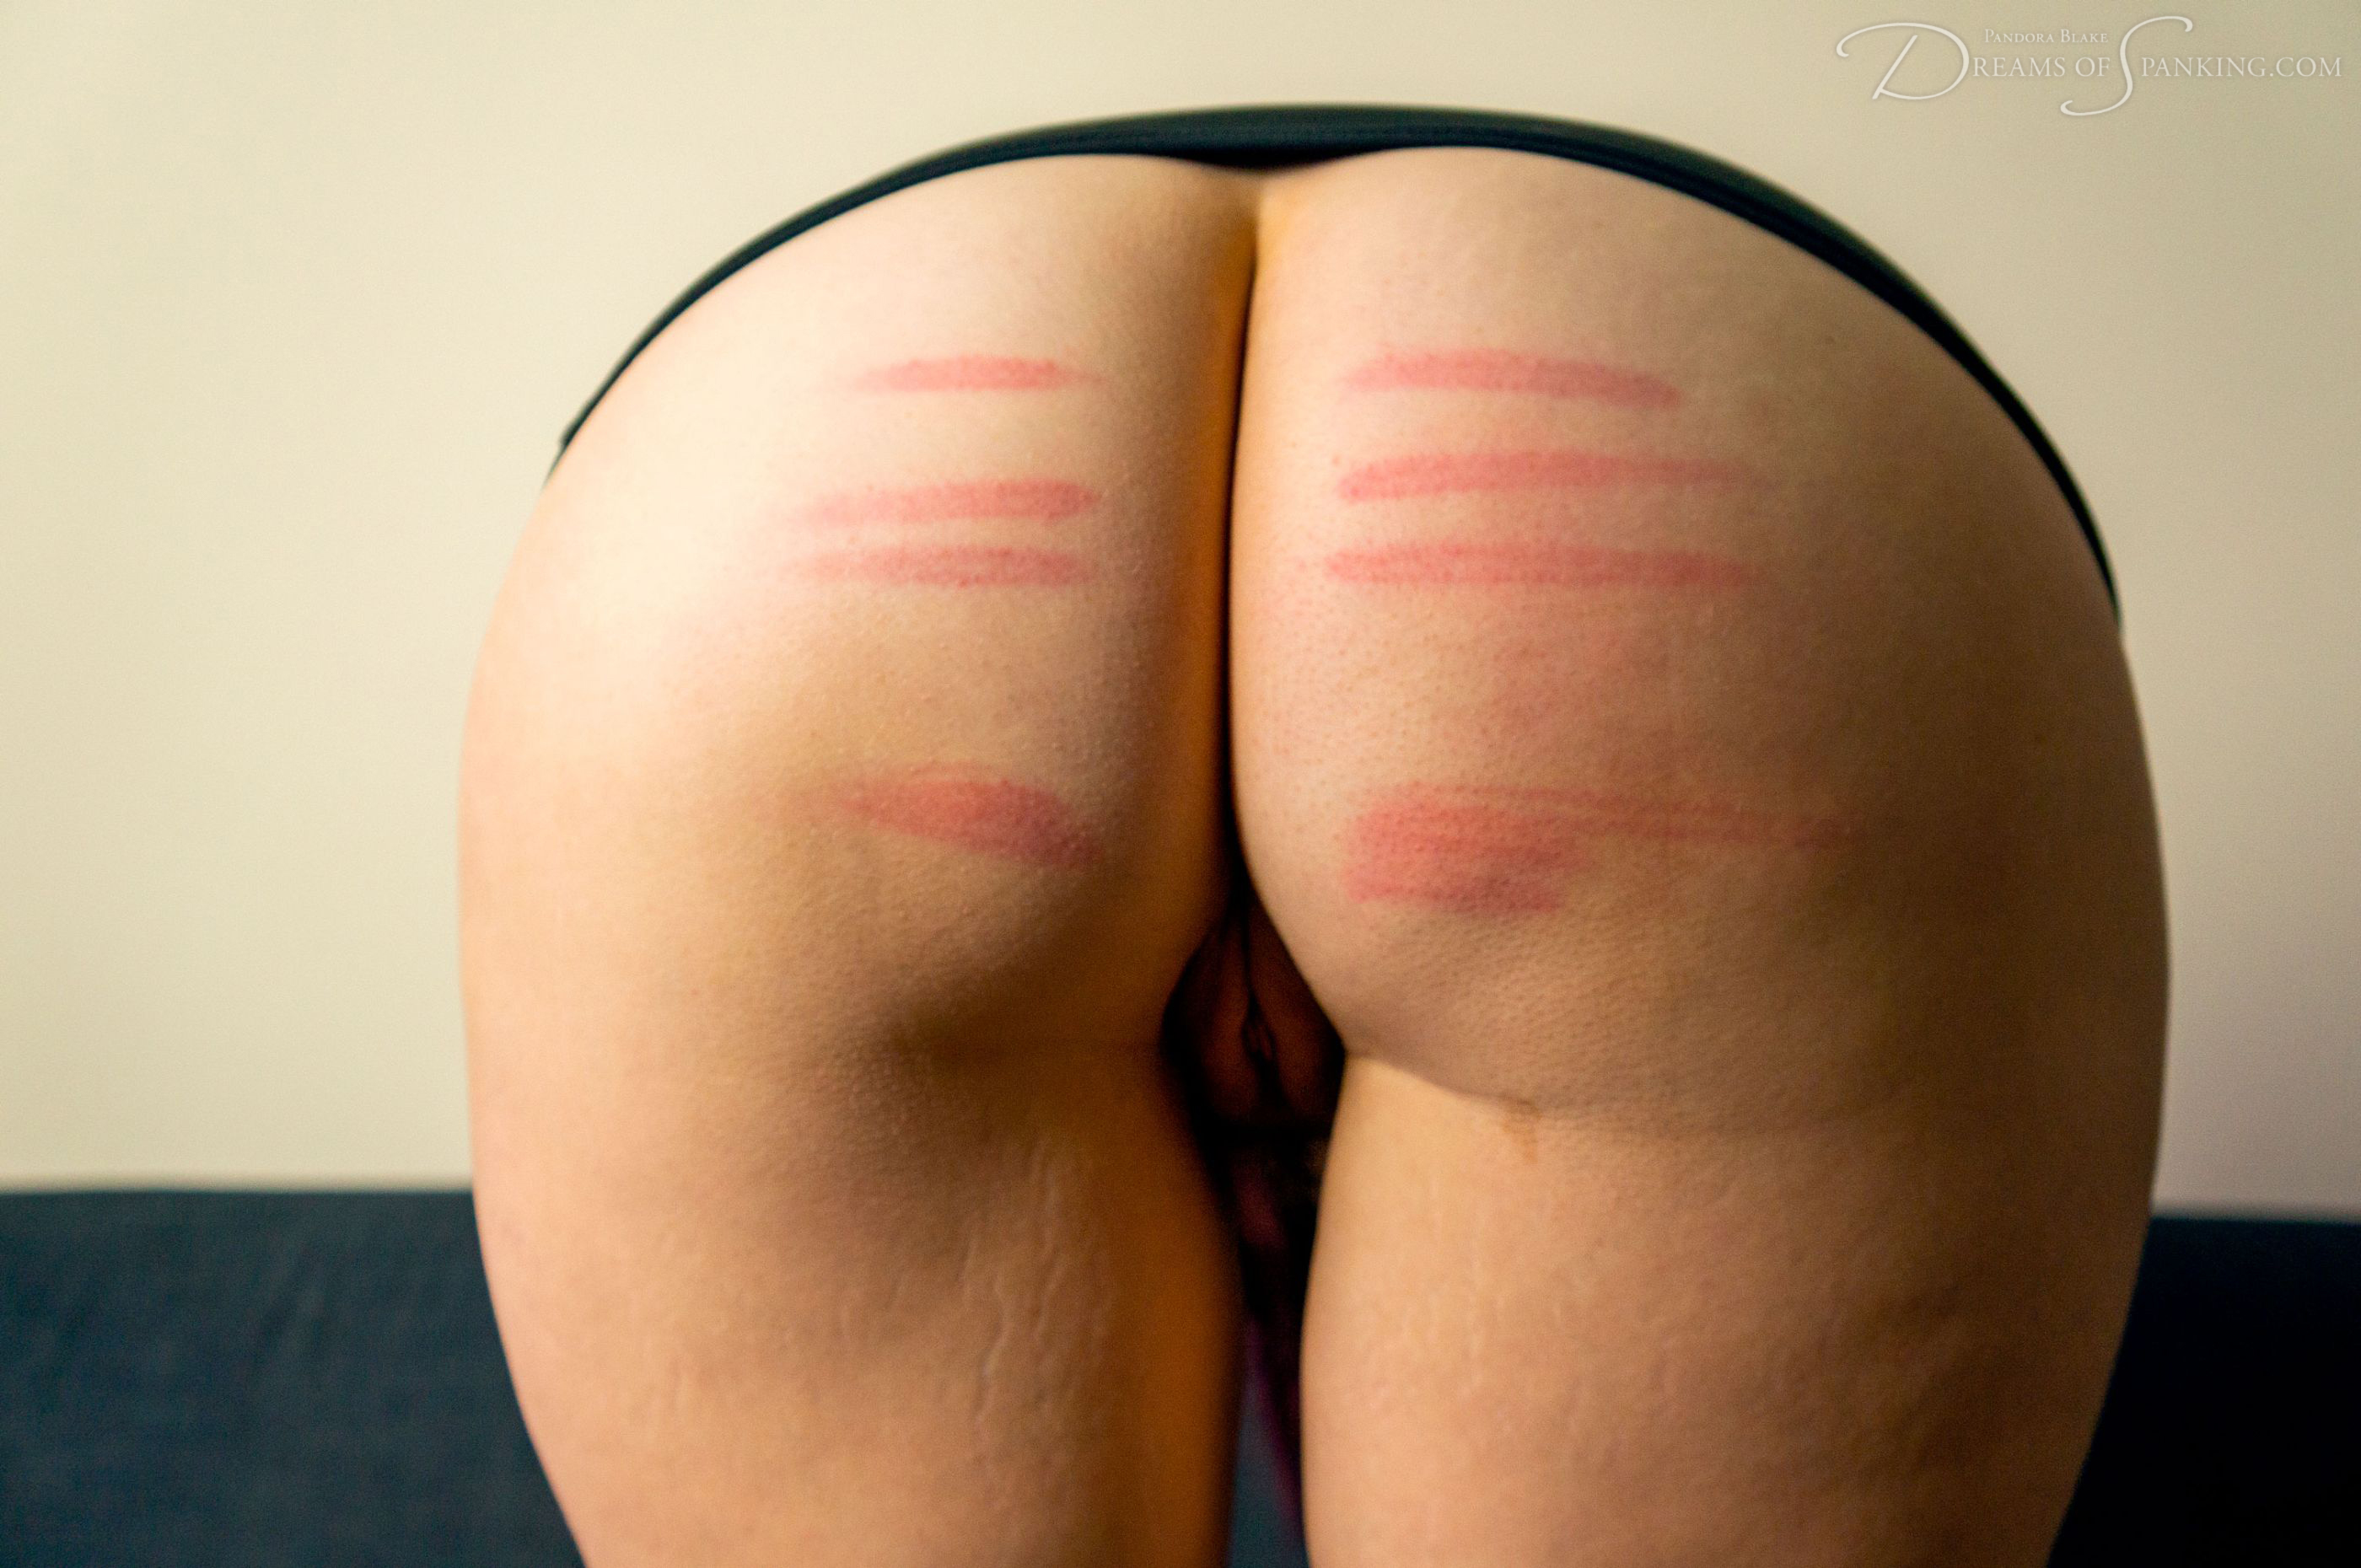 Pandora Blake's caned bare bottom at Dreams of Spanking